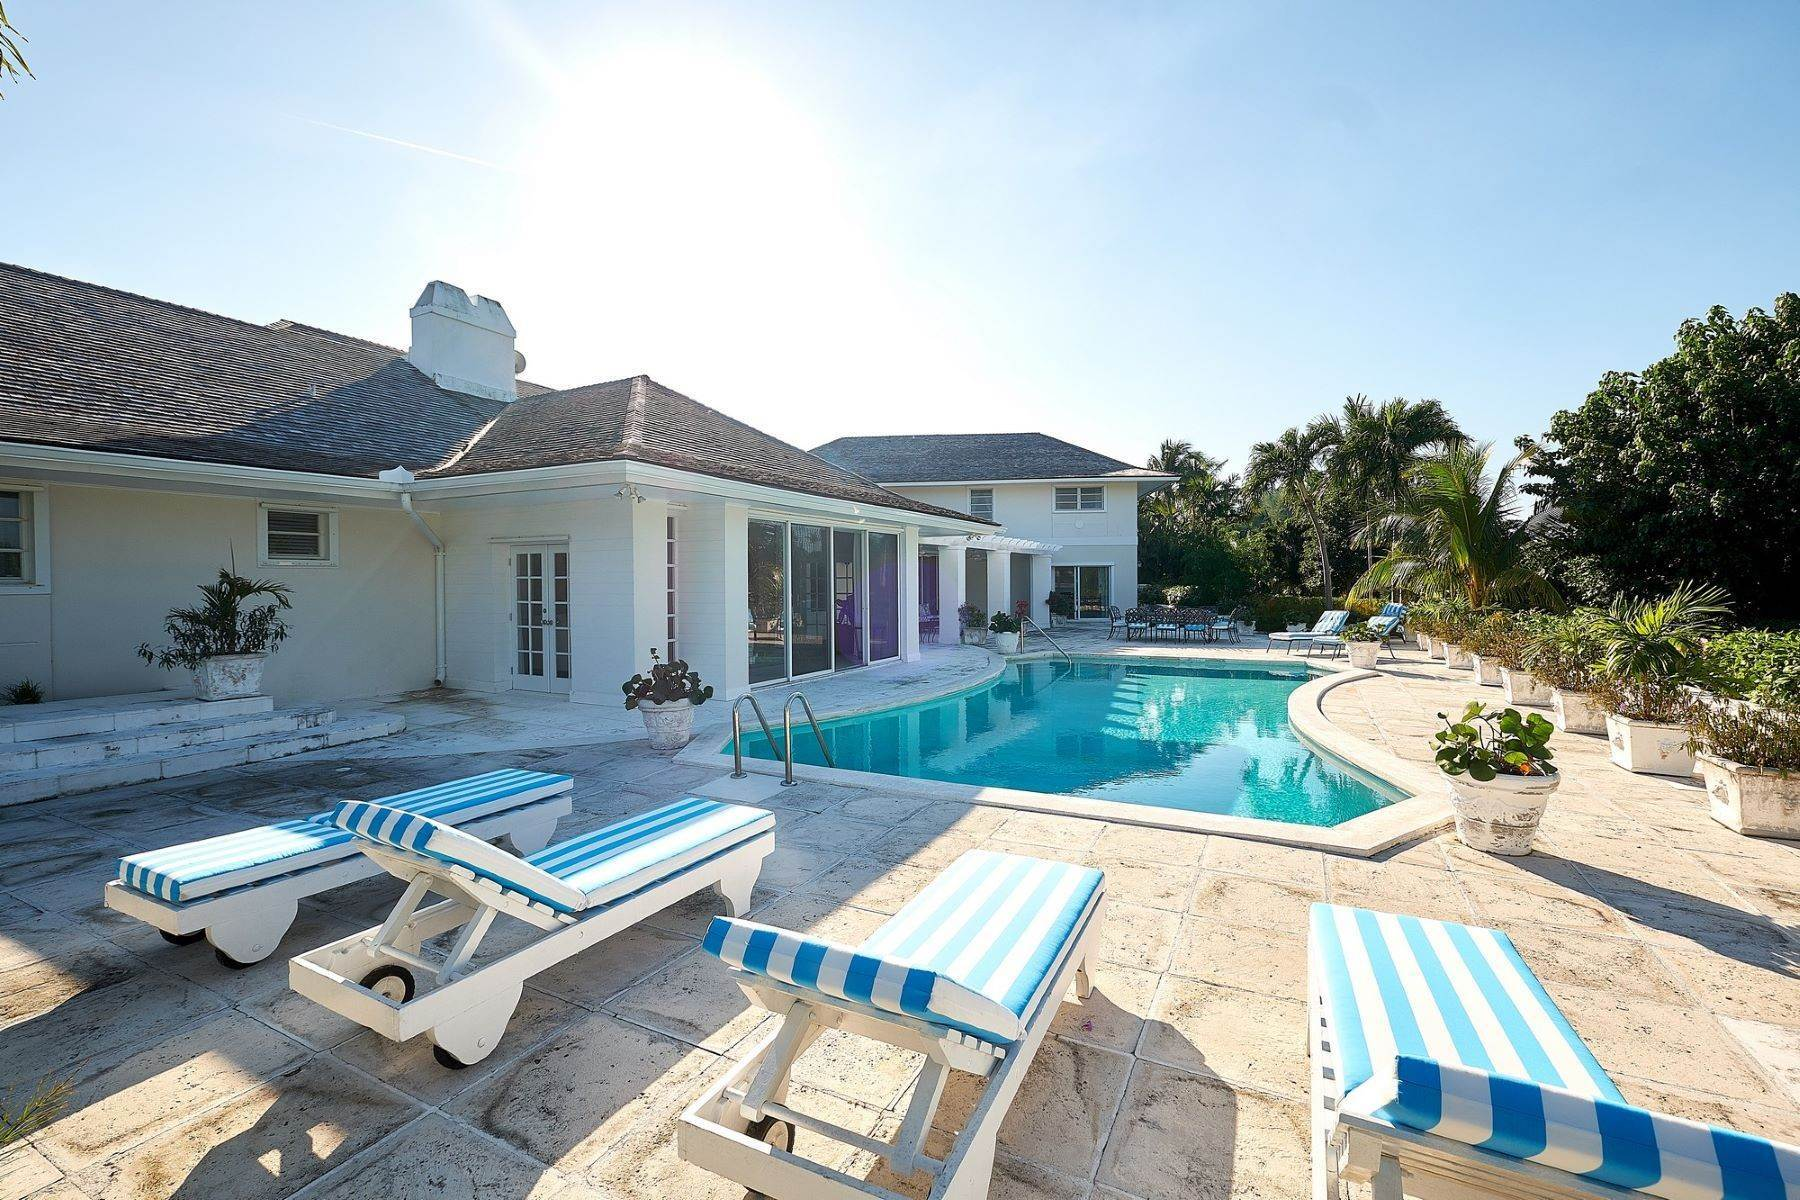 Single Family Homes for Sale at A little bit of heaven, West Lyford Place Lyford Cay, Nassau And Paradise Island 0 Bahamas